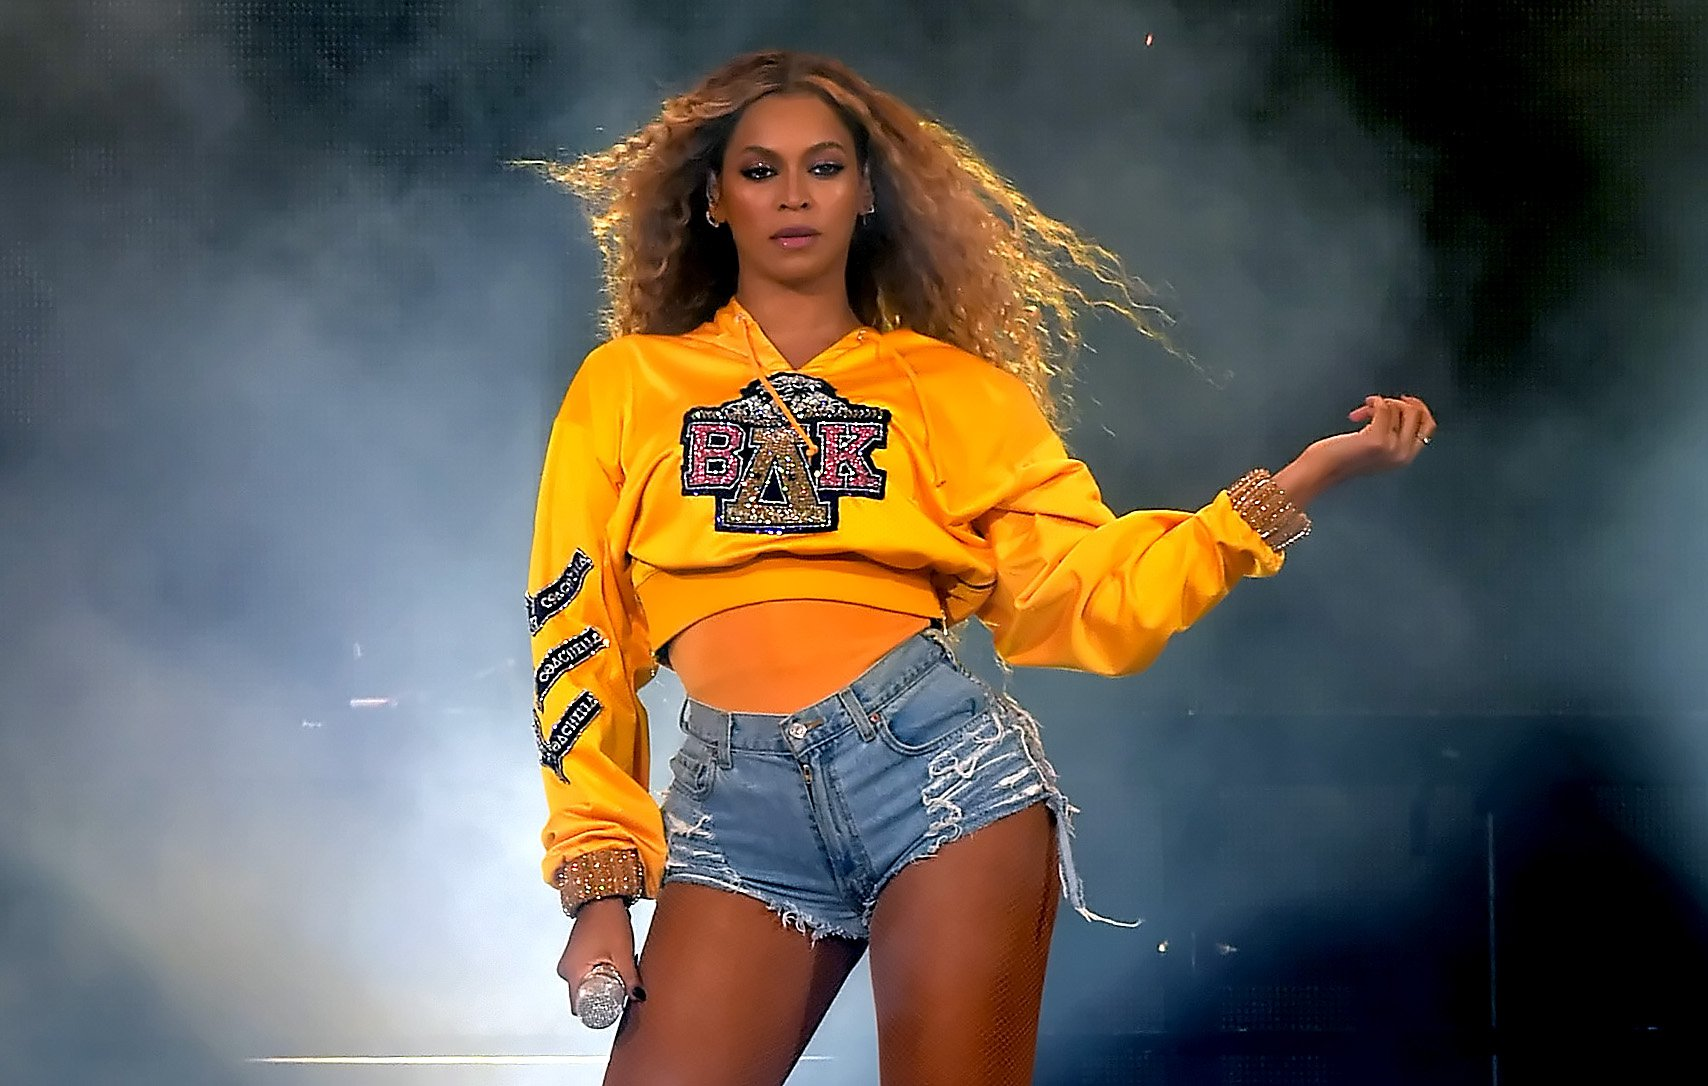 Beyonce 'plotting world domination with epic tour in 2020'